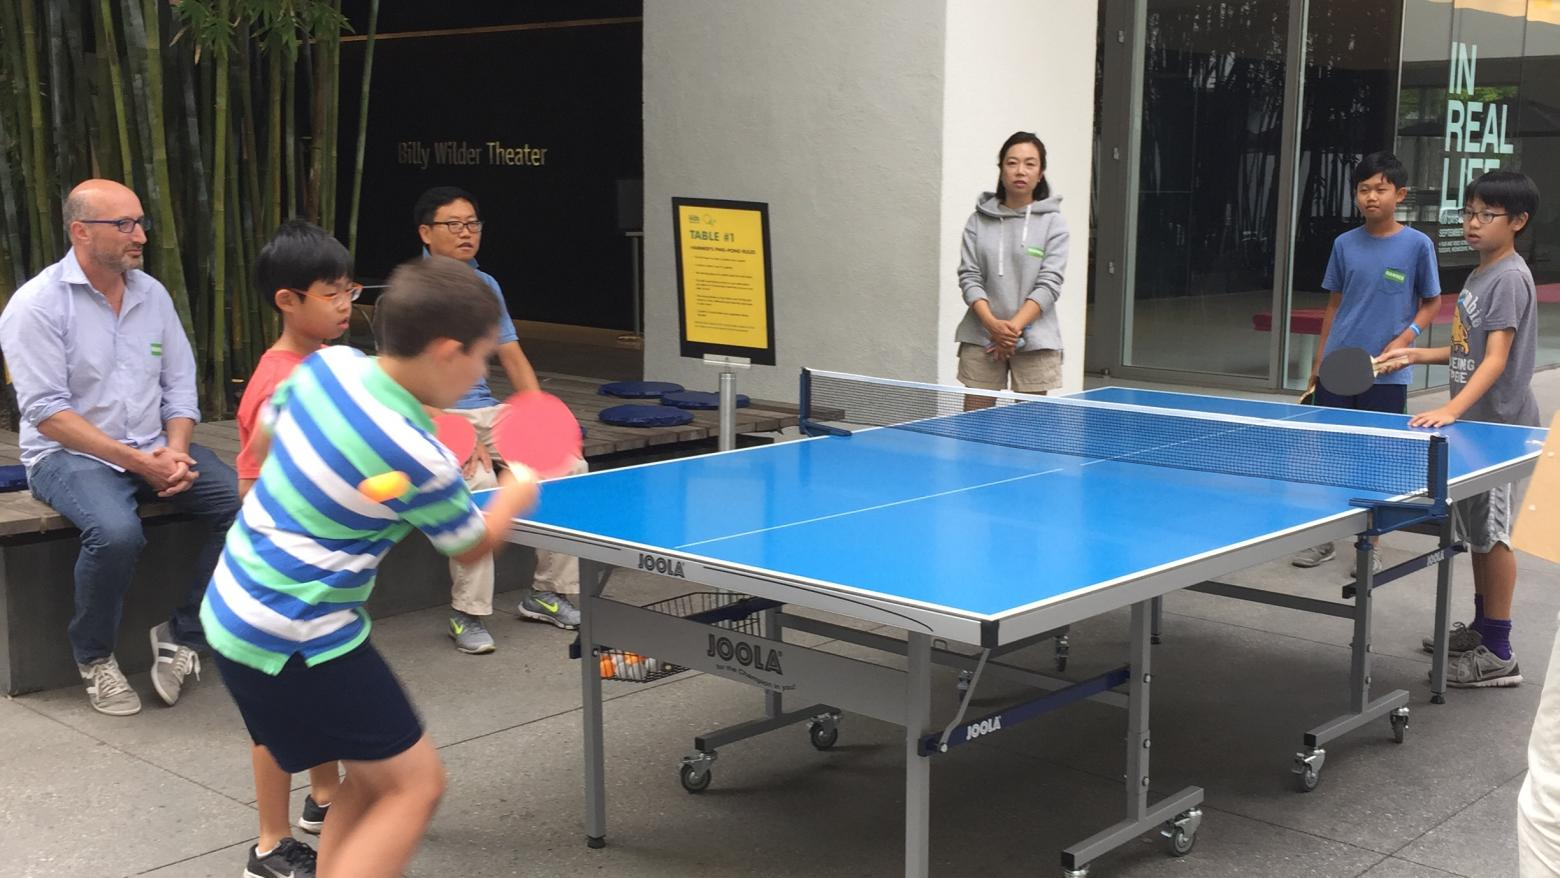 Ping-pong tournament